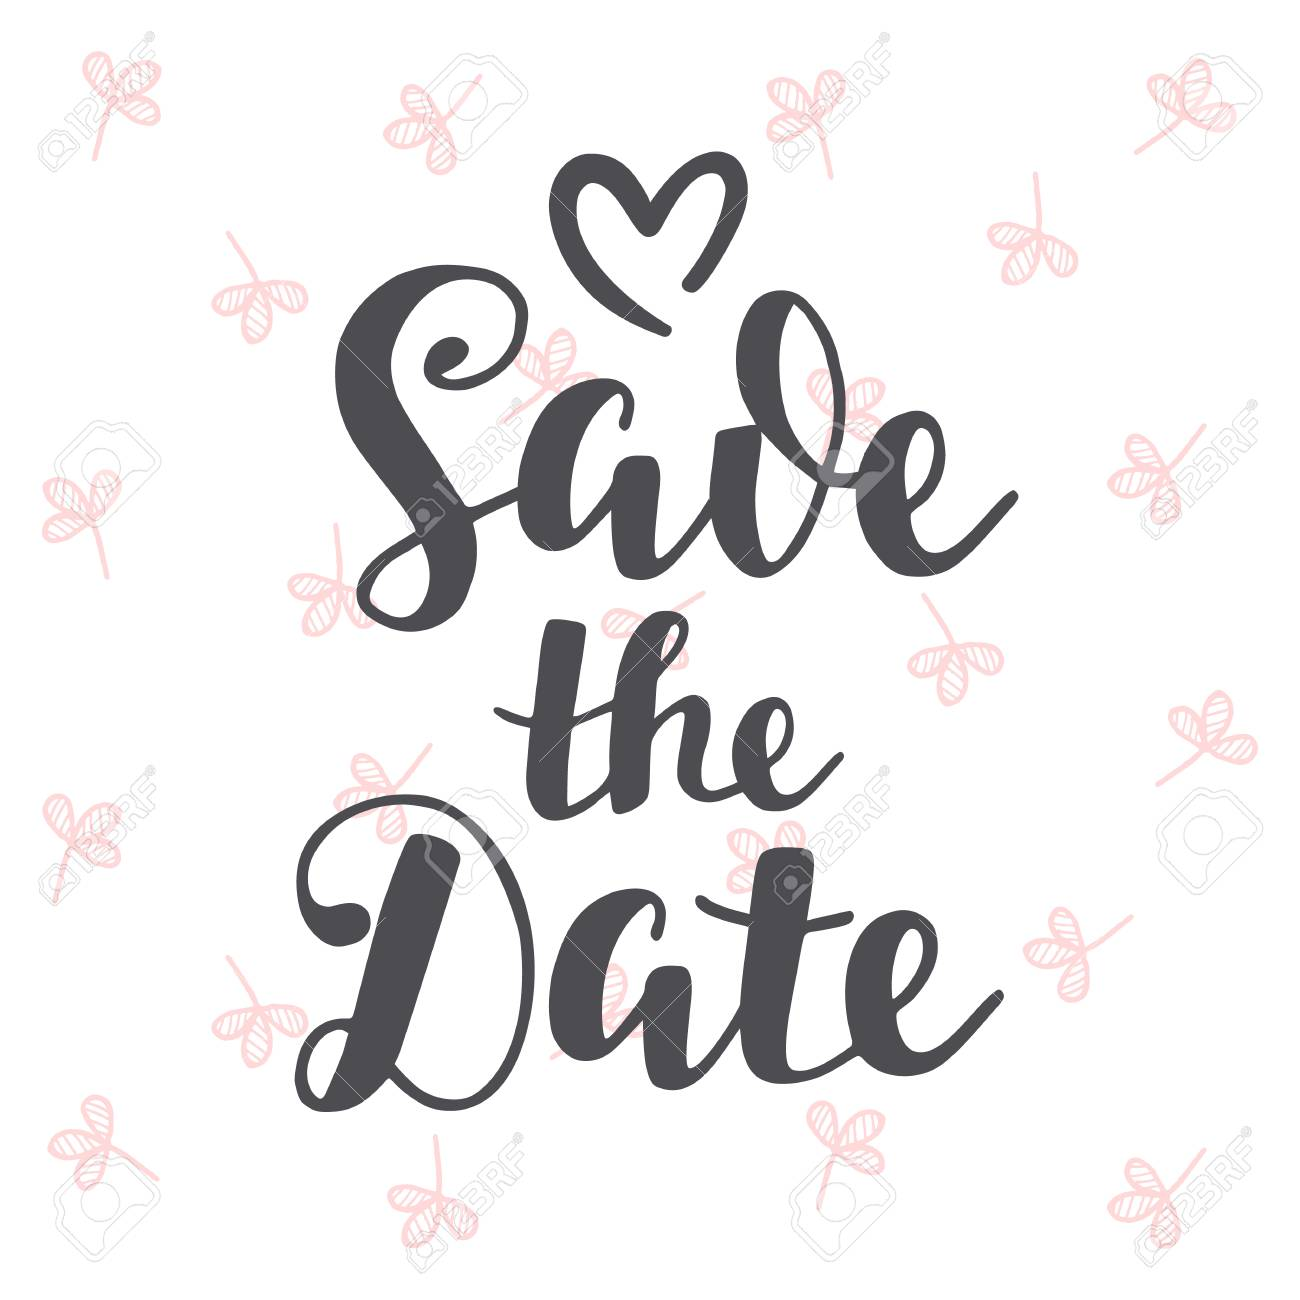 Save The Date Vintage Hand Written Lettering Wedding Invitation